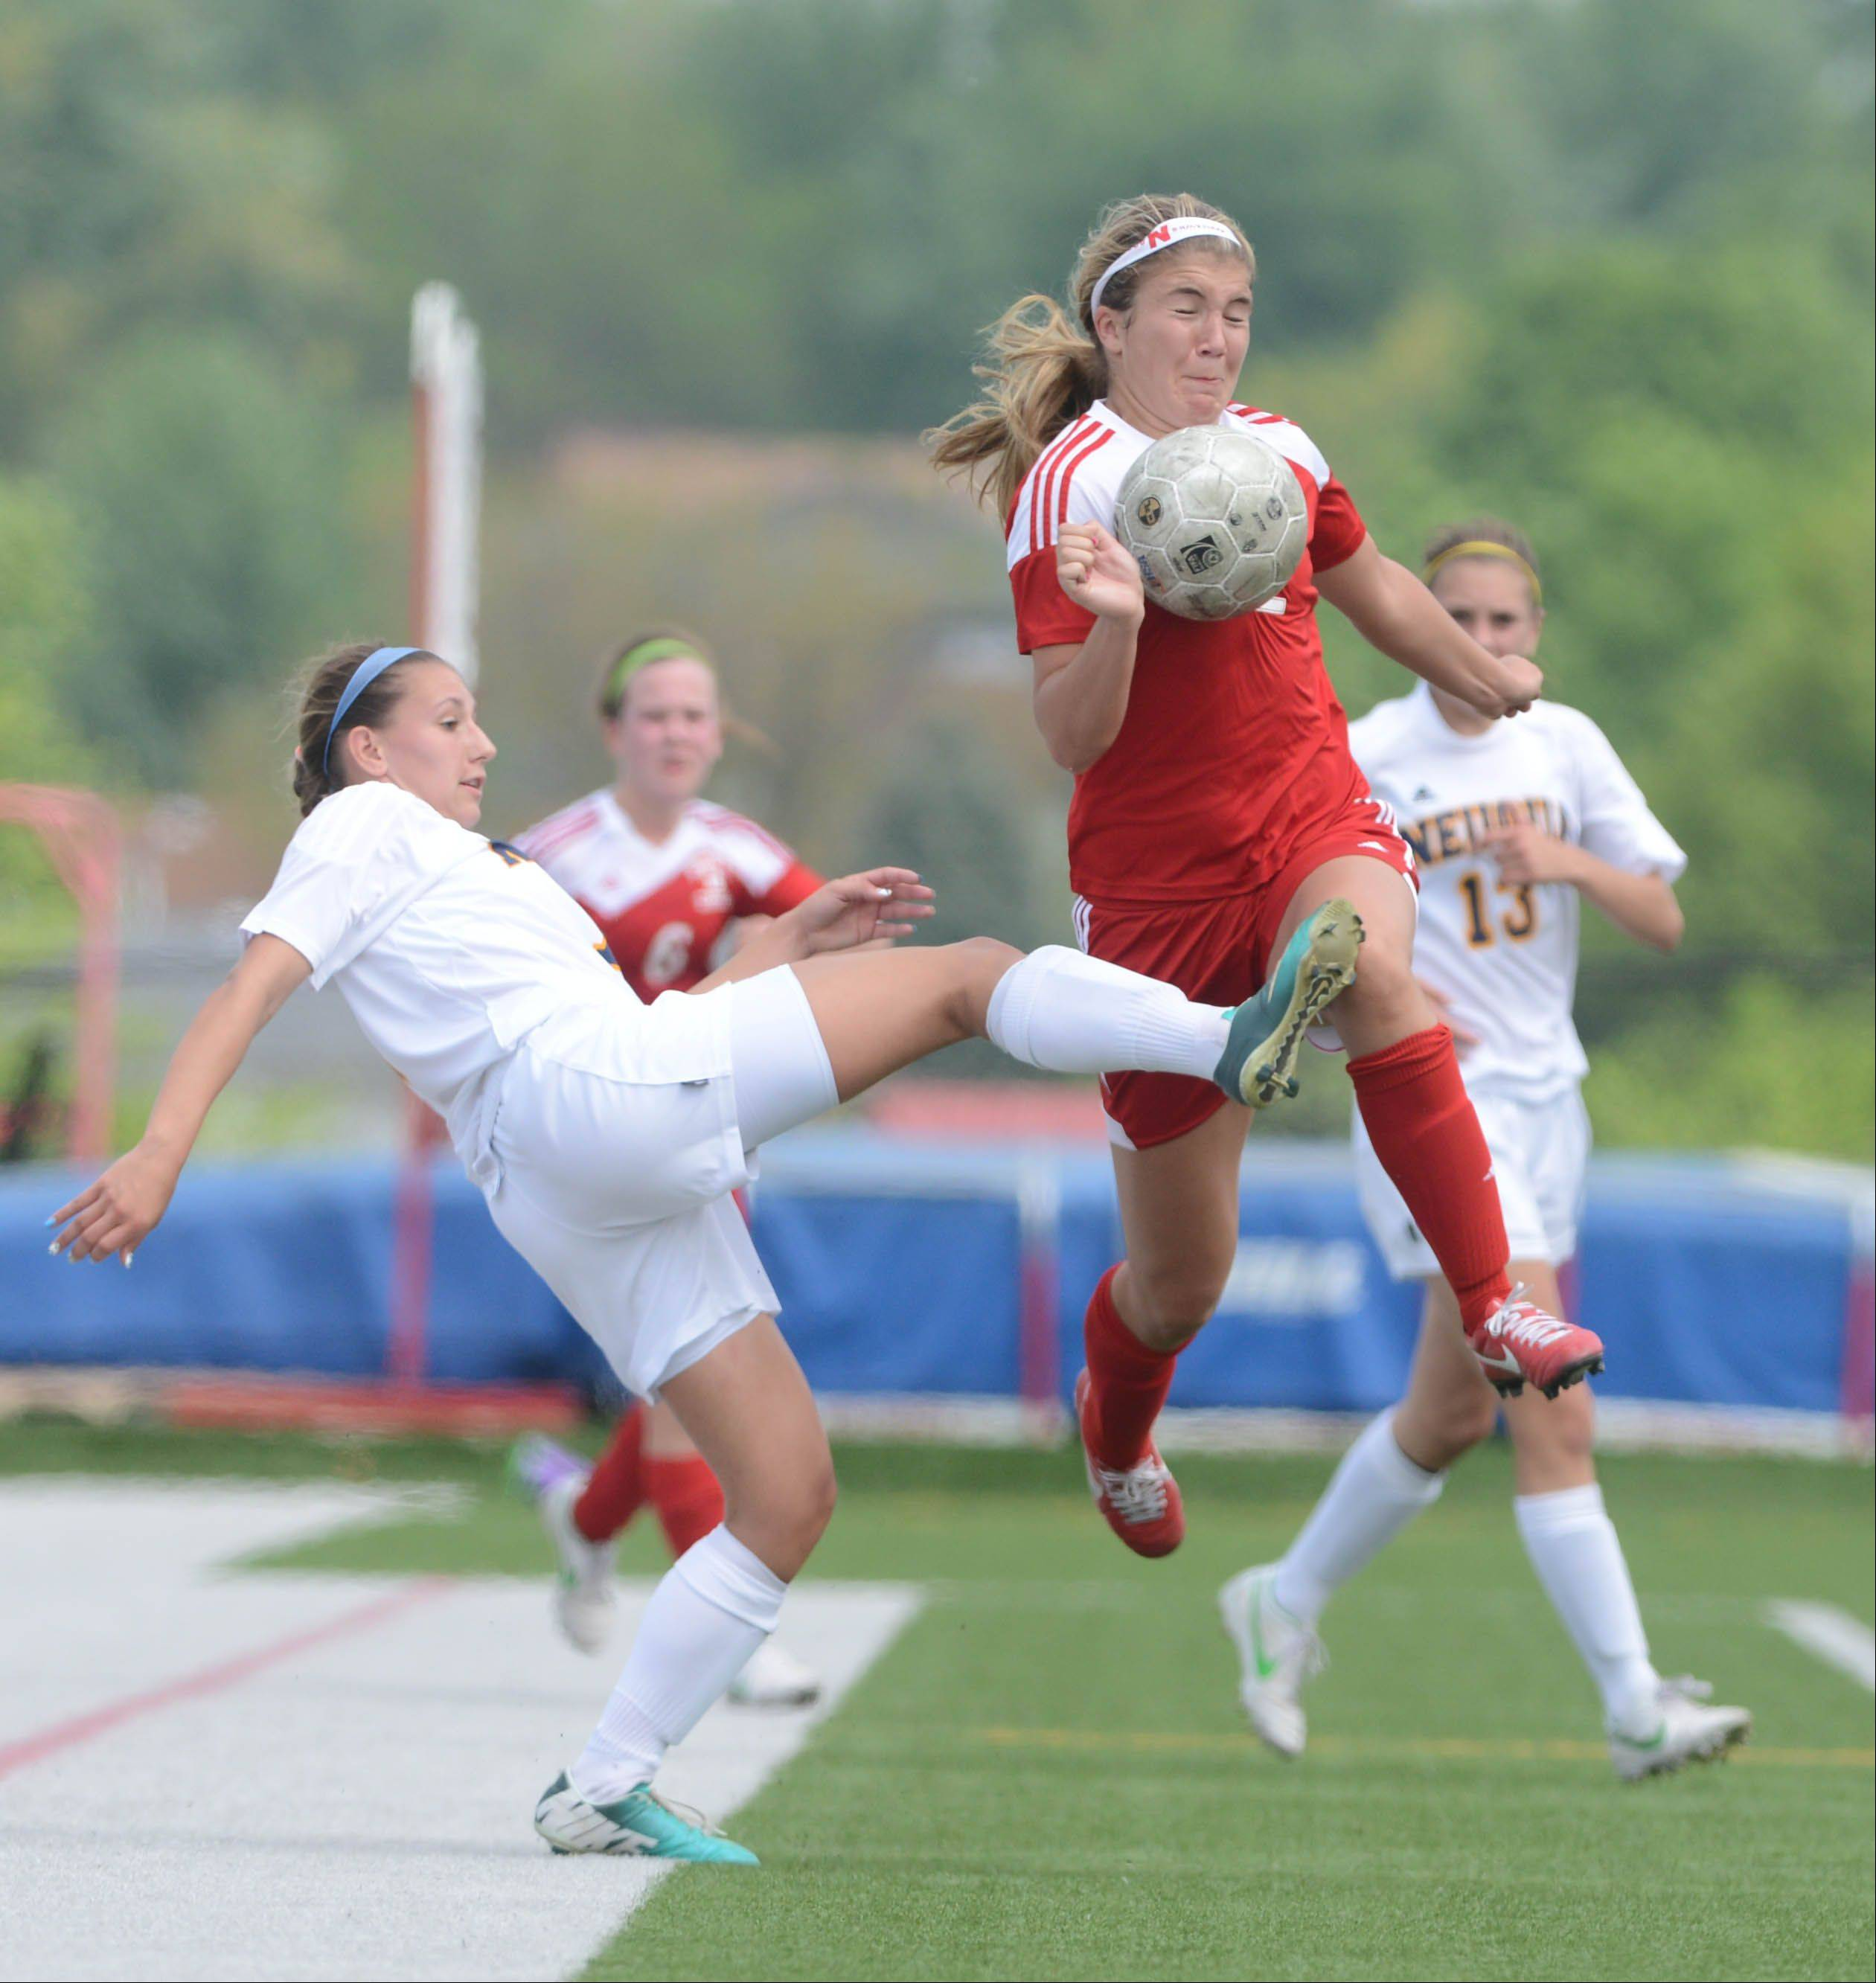 Talise Romain of Neuqua,left, and Abby Joyce of Naperville Central dual for the ball during the class 3A Bolingbrook girls soccer regional final Saturday.